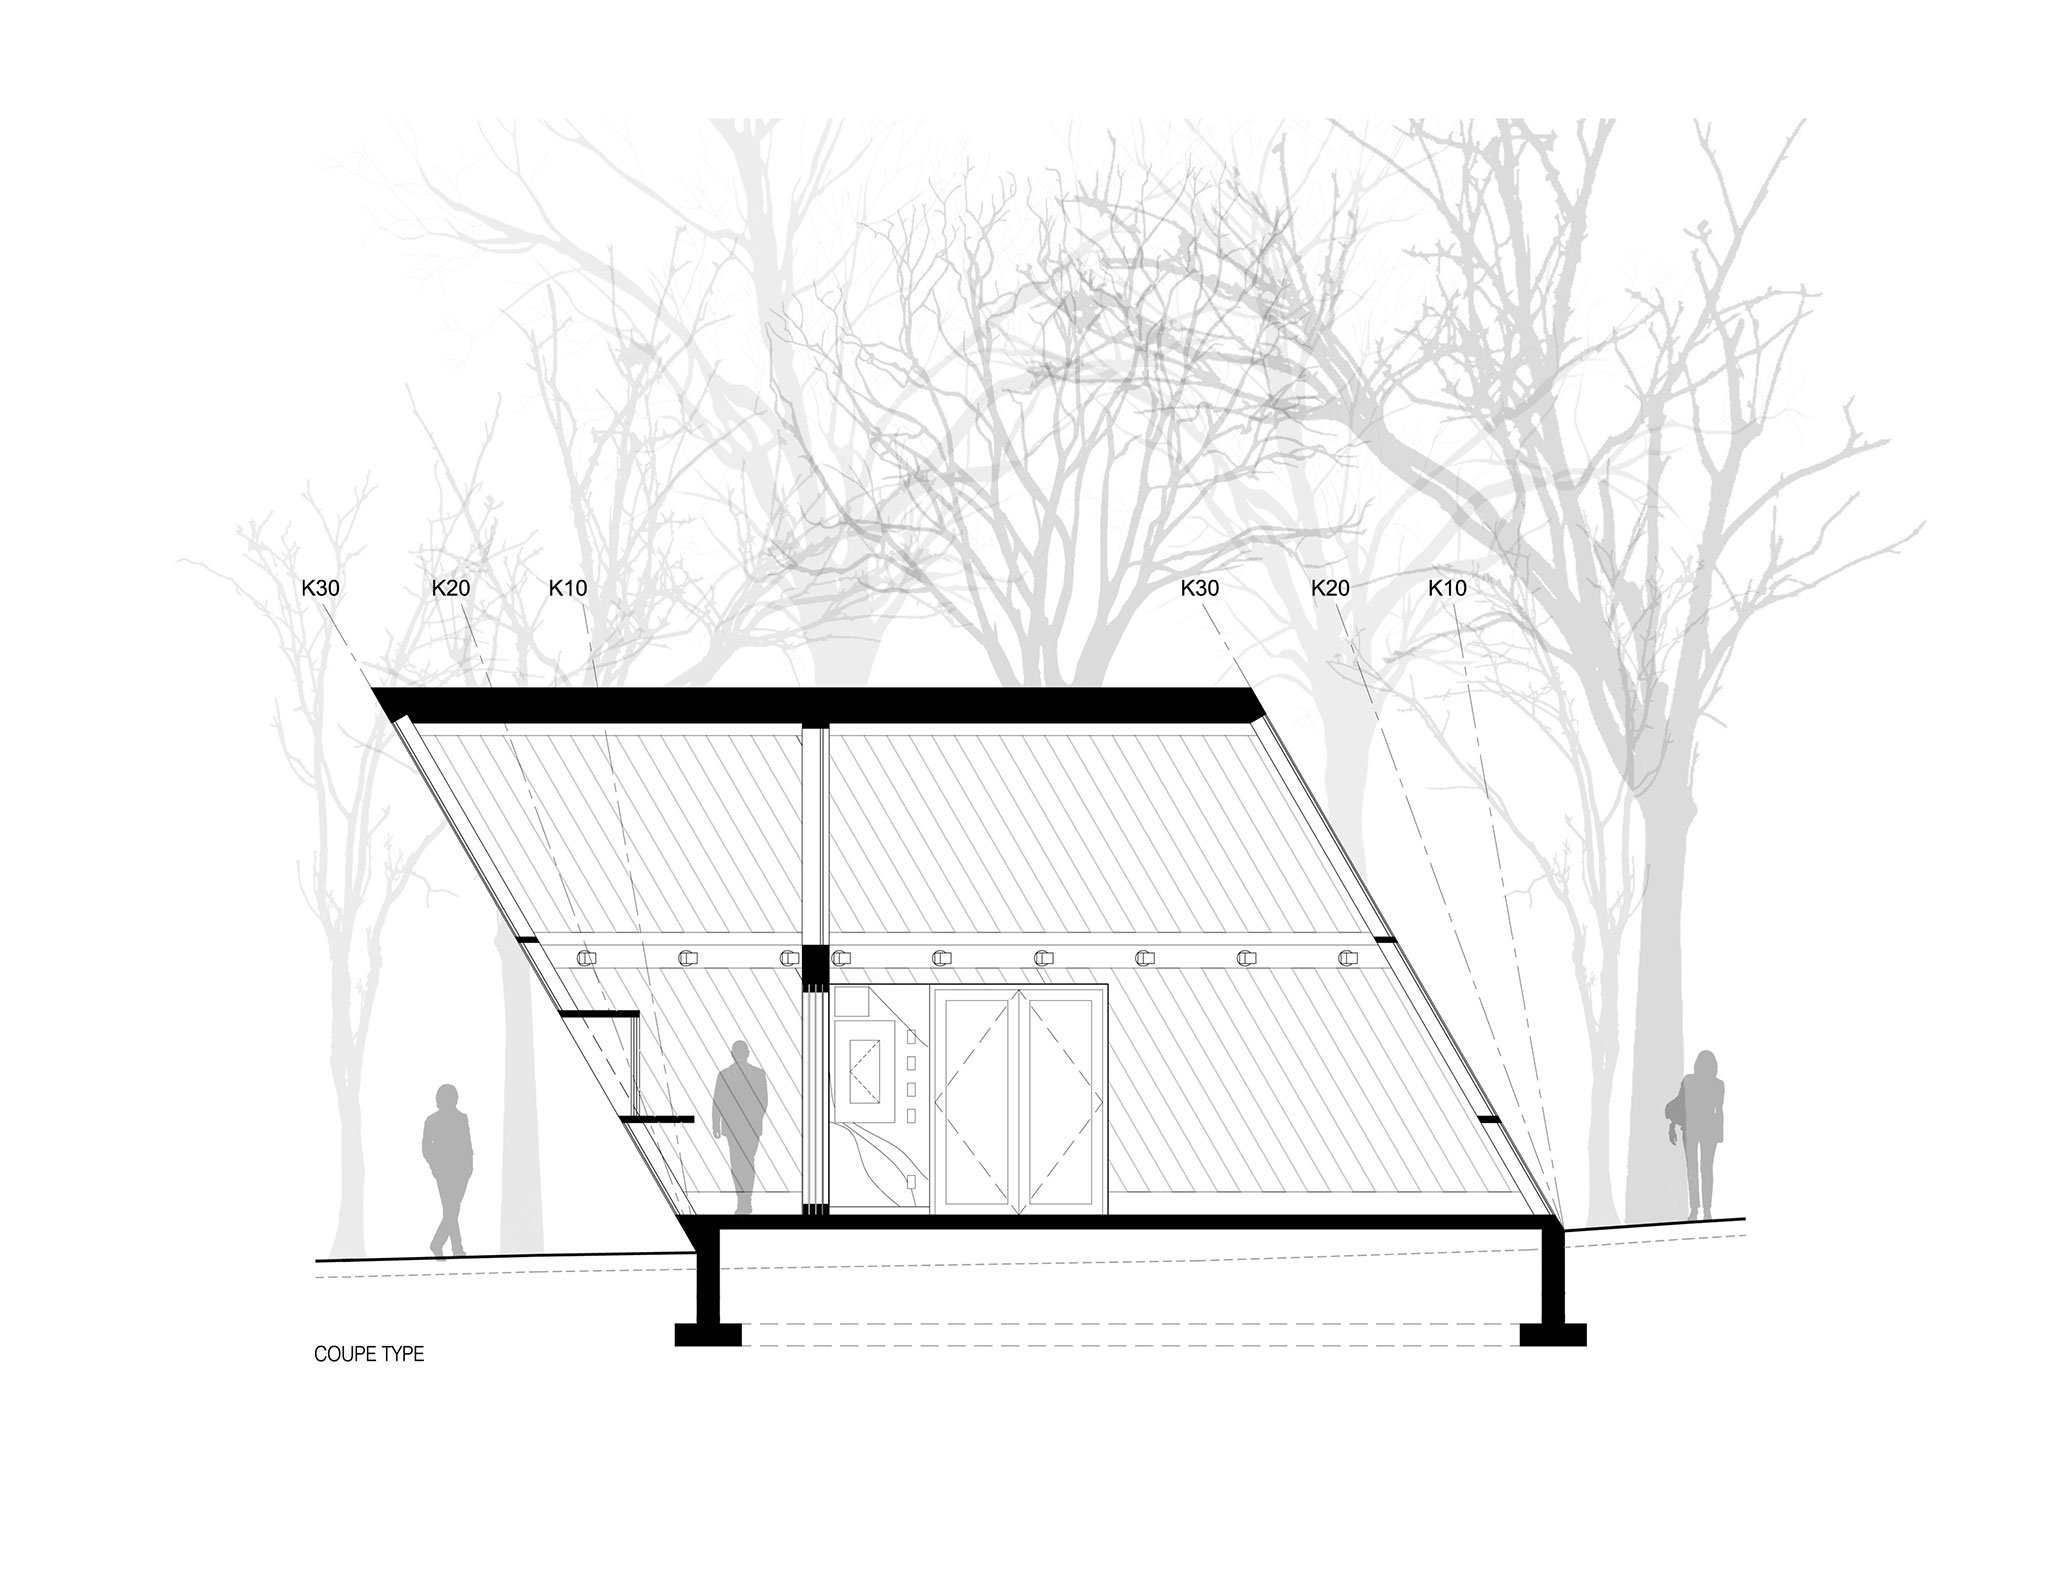 2048x1583 Moved By The Landscape, Mount Royal Kiosks By Atelier Urban Face